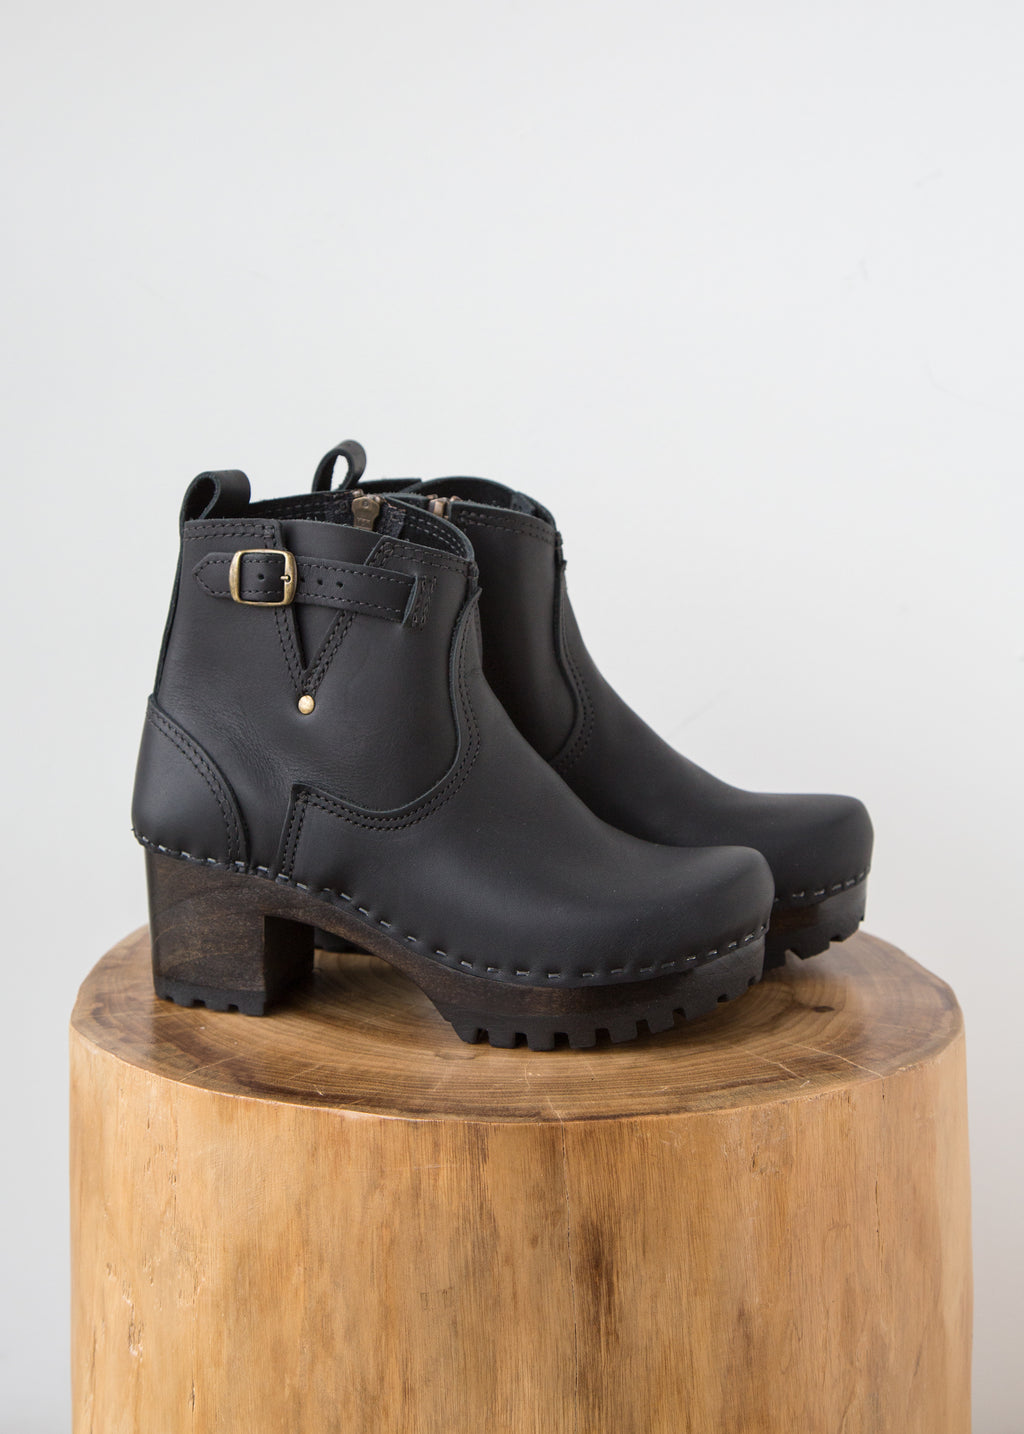 No.6 5' Buckle Boot Mid Black Coffee - SOLD OUT